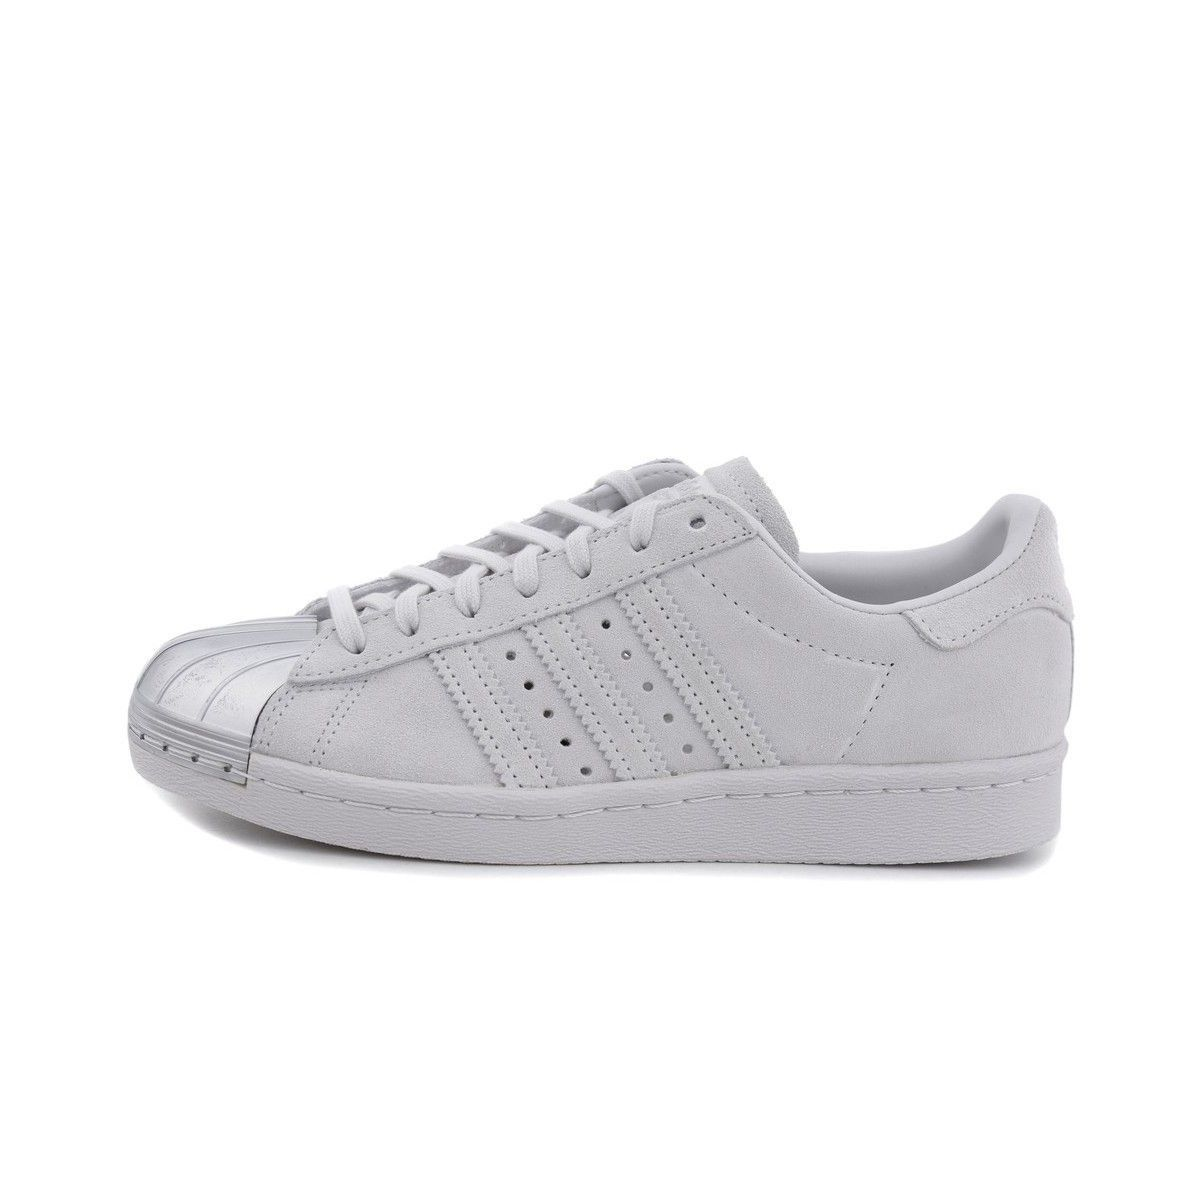 Basket Adidas Originals Superstar 80s - Cp9945 - Taille : 38 ...